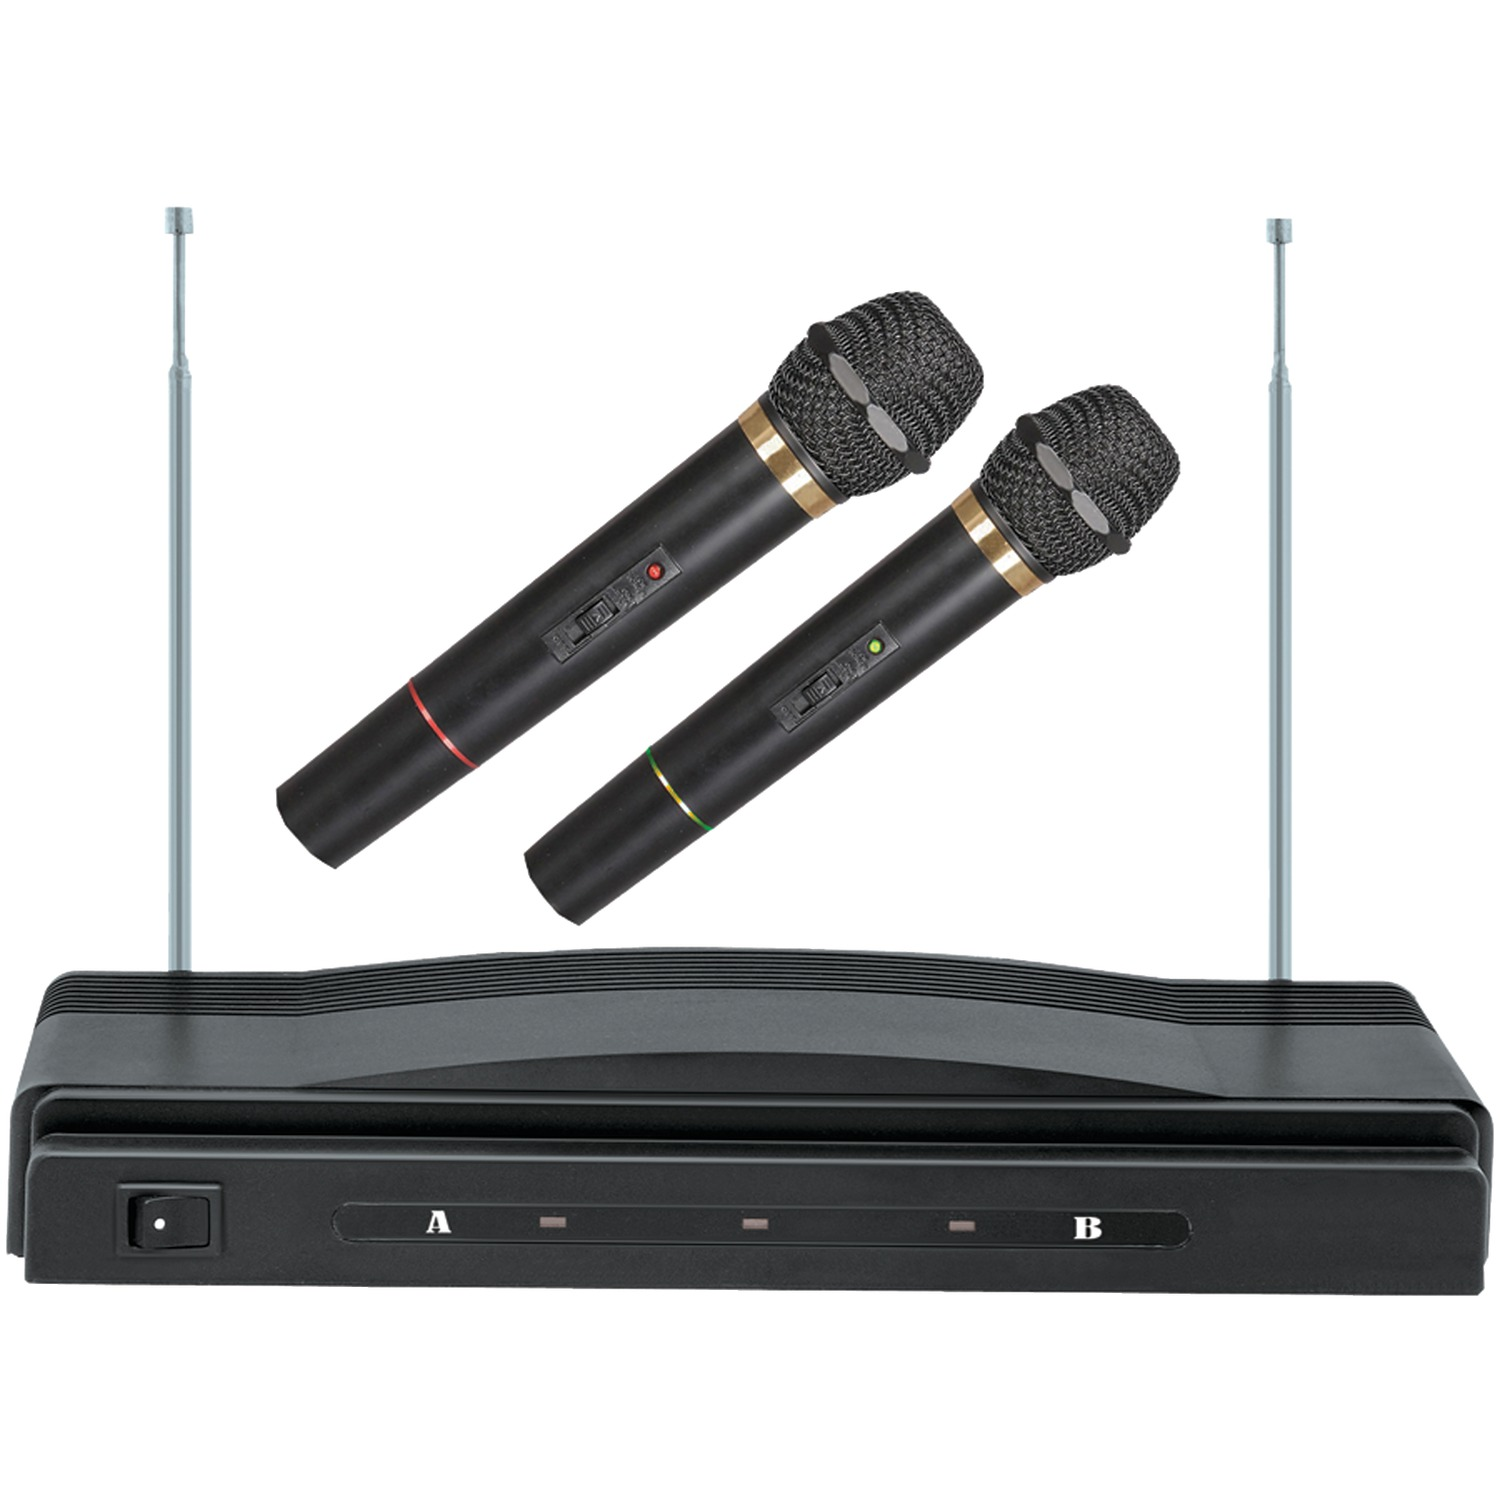 Supersonic SC-900 Professional Dual Wireless Microphone System by Supersonic